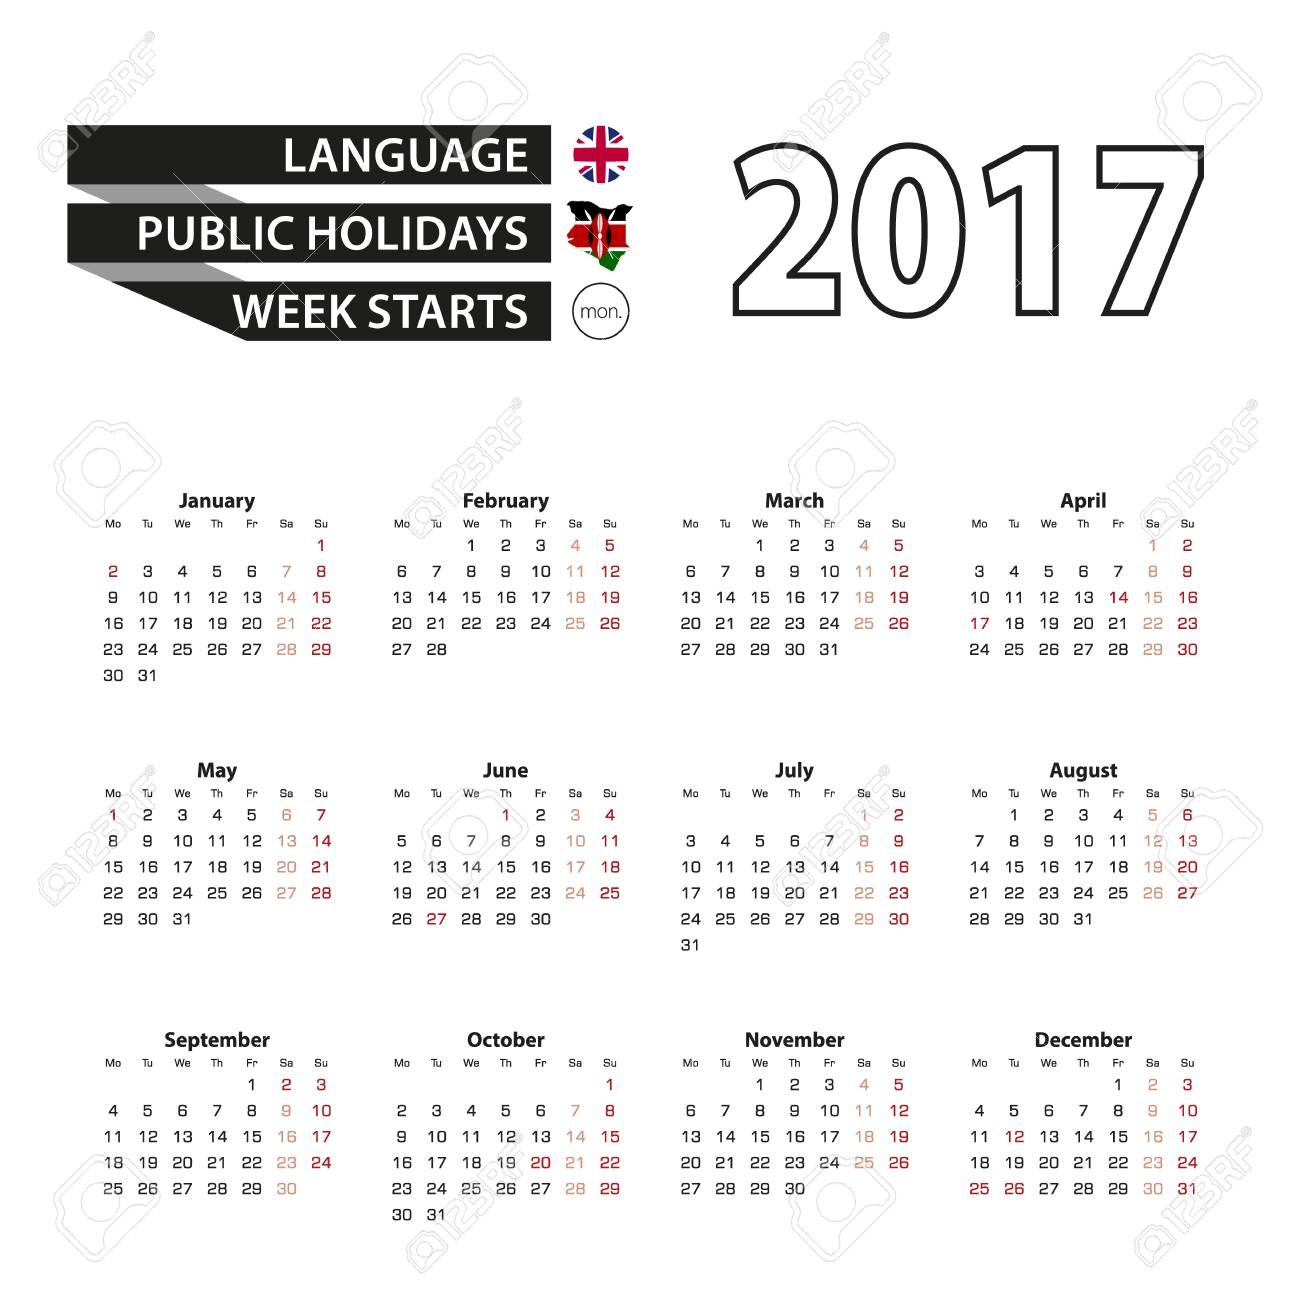 Calendar 2017 On English Language With Public Holidays For Kenya Royalty Free Cliparts Vectors And Stock Illustration Image 68319245